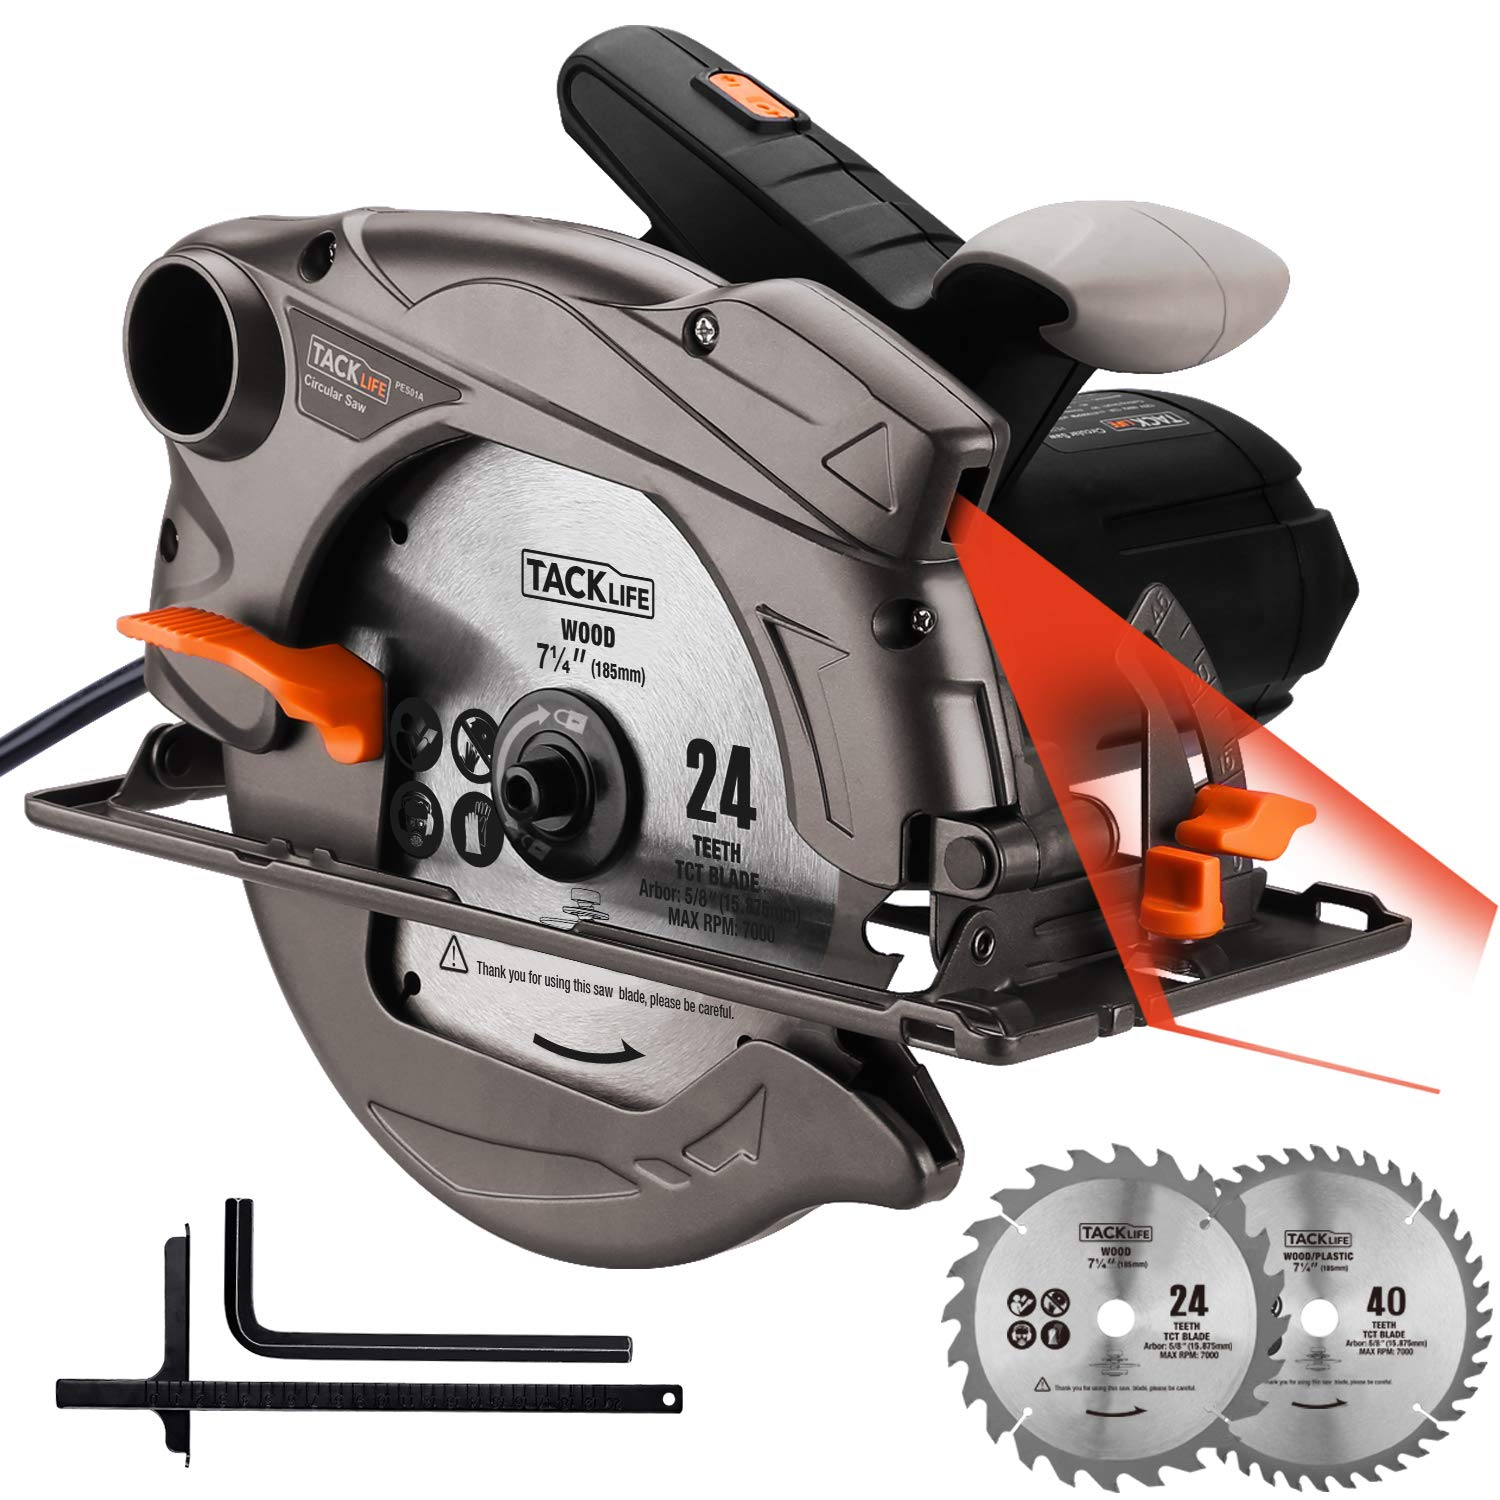 Circular Saw, 7-1/4''(7-1/2'') Saw with Lightweight Aluminum Guard, 10feet Cord Length, Laser Guide, Max Cutting Depth 2-1/2''(90°), 1-4/5''(45°), 2 Blades -Tacklife PES01A